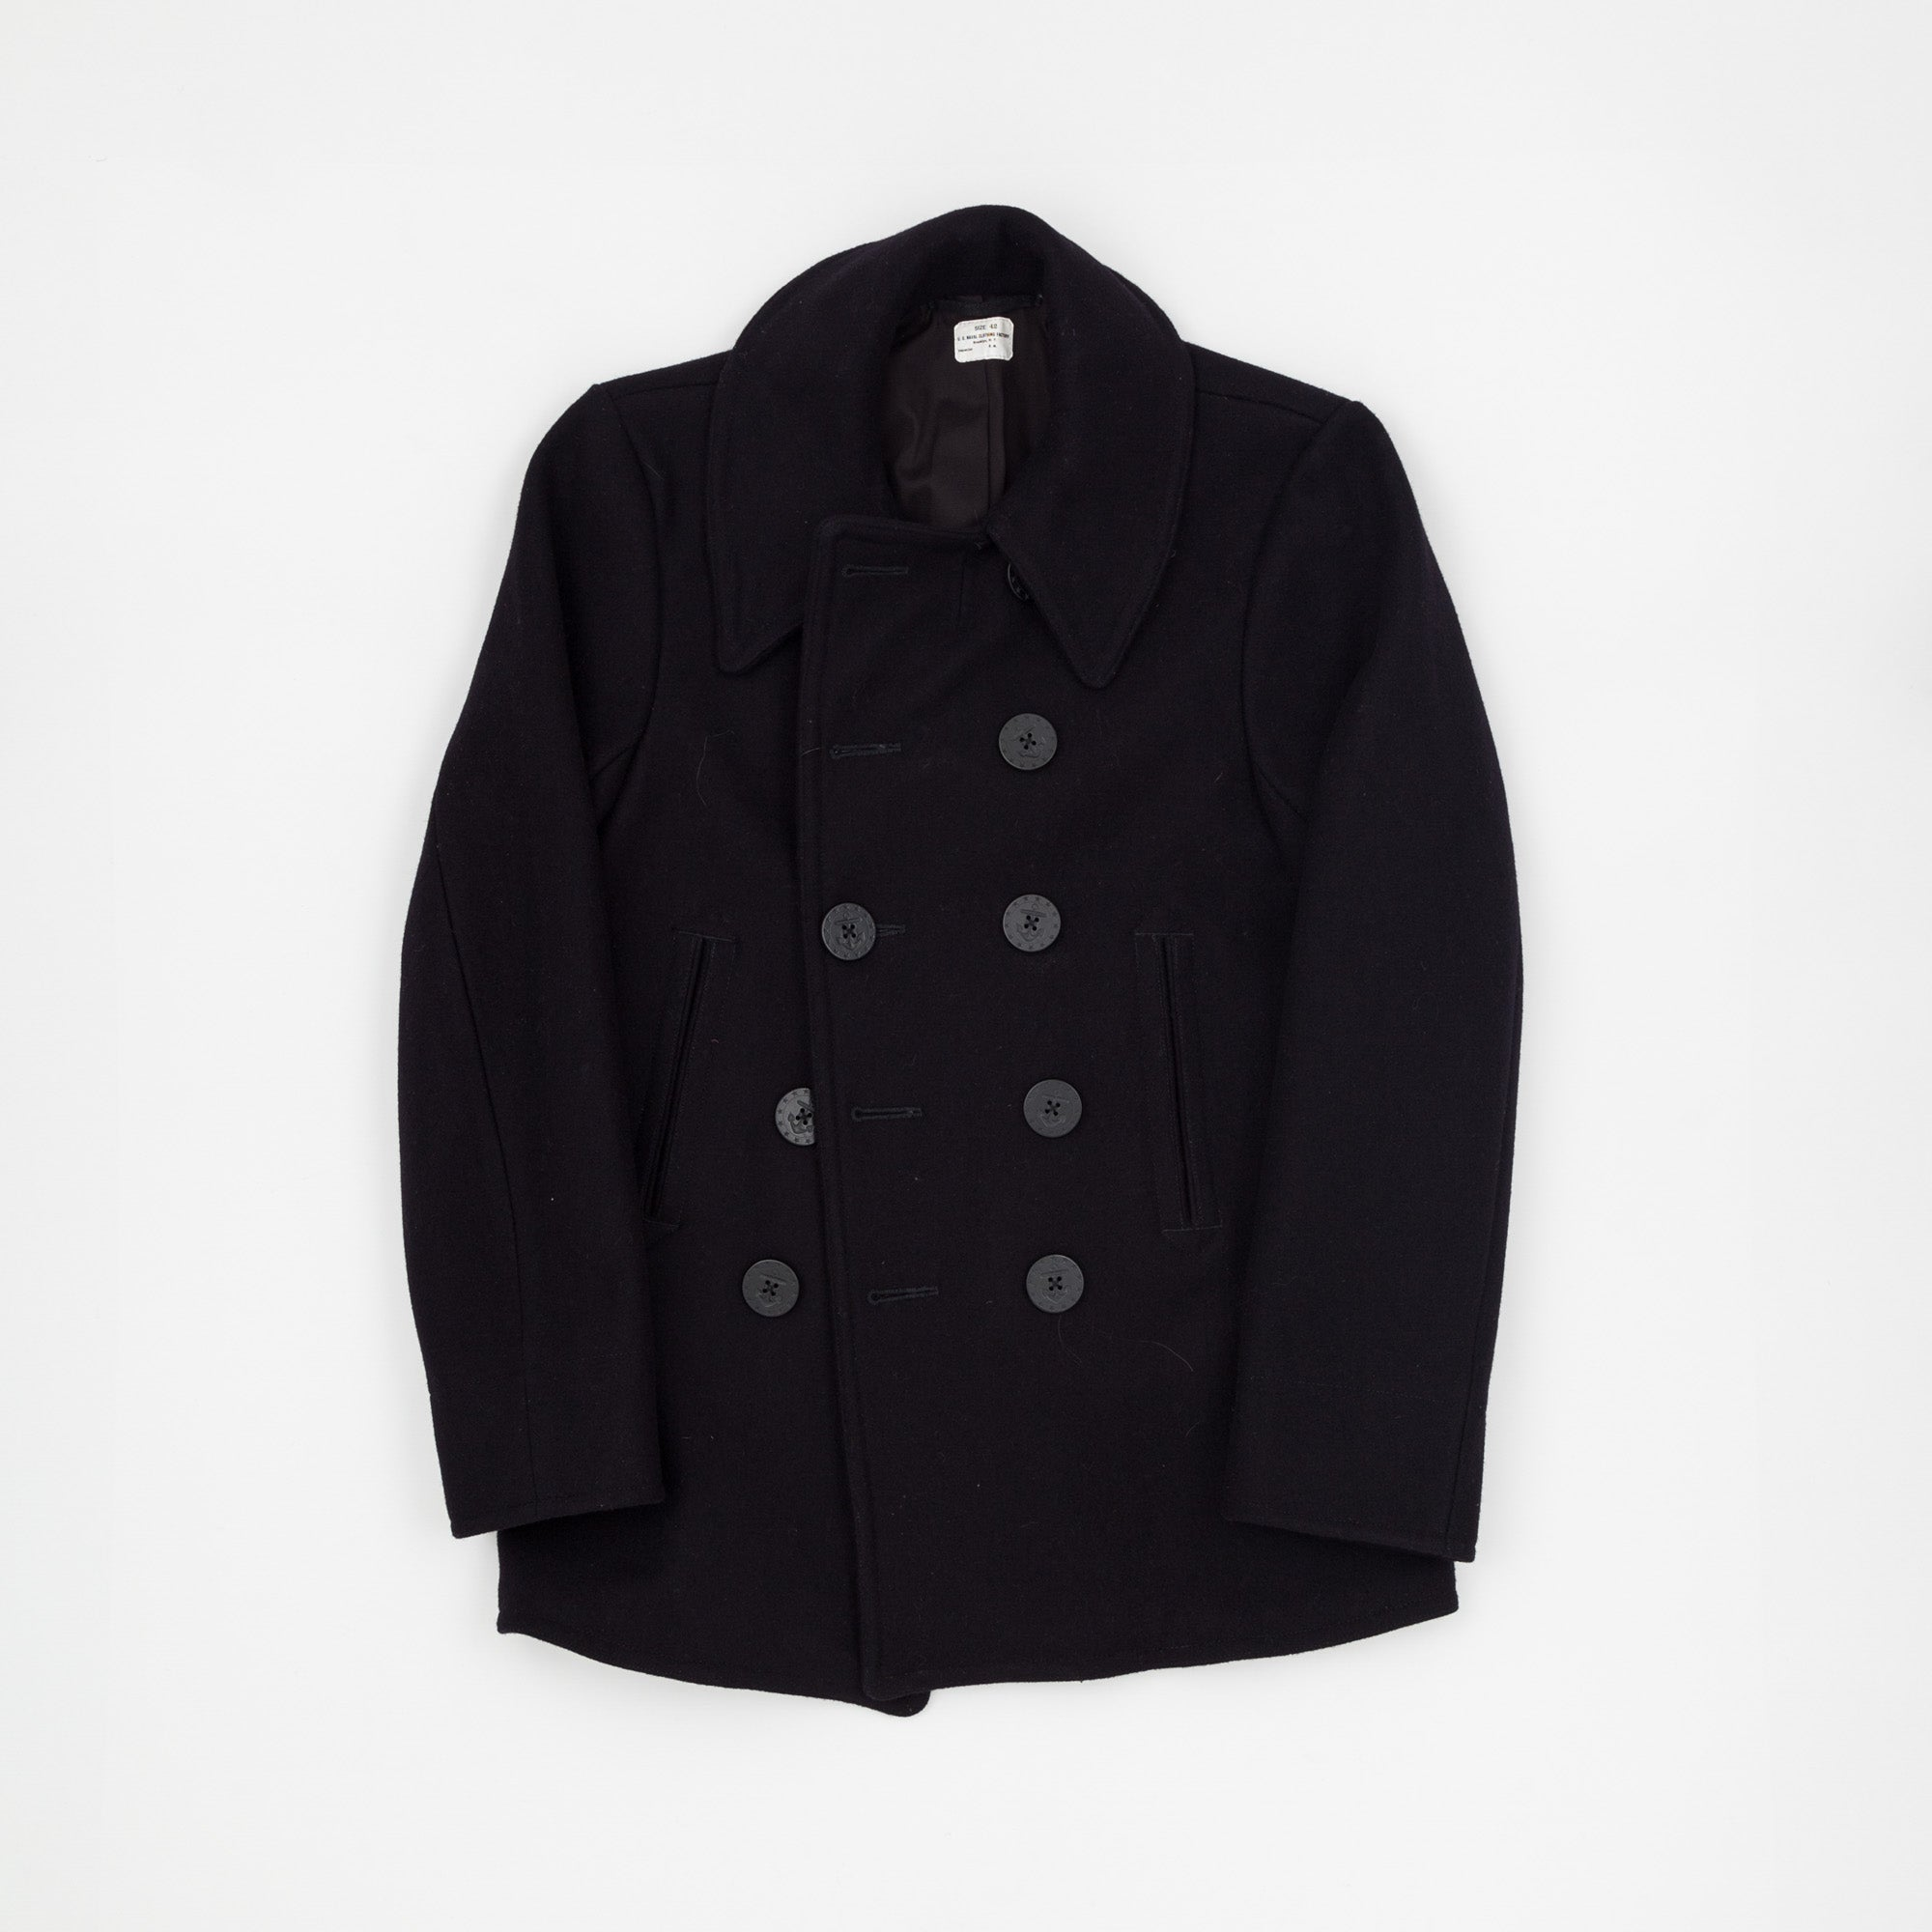 The Real McCoy's U.S Navy Pea Coat